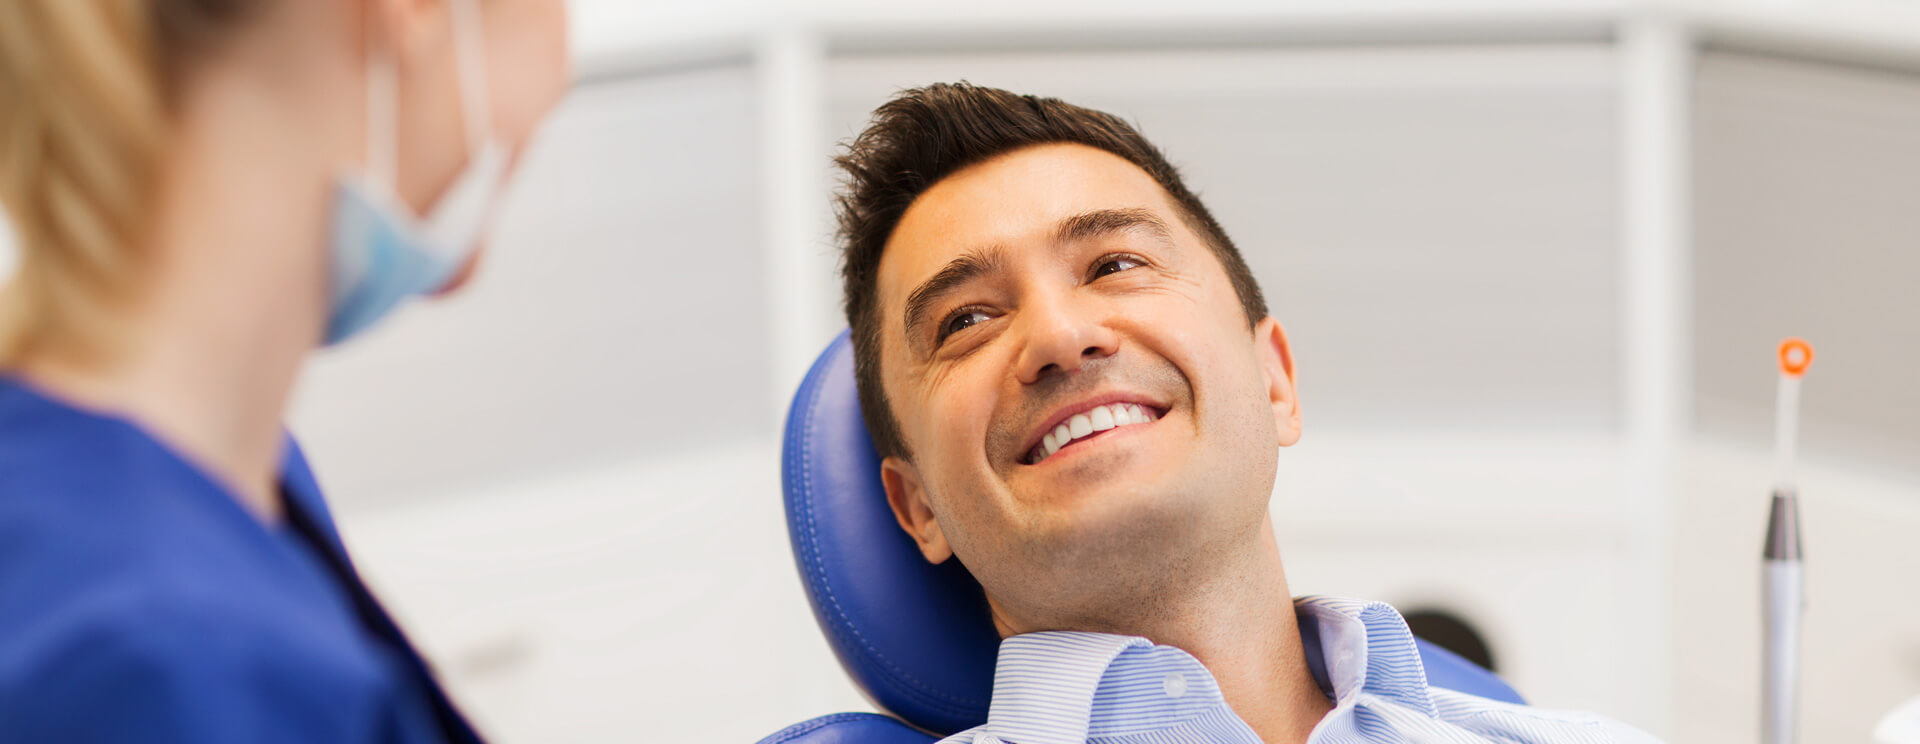 Male person seated on dental chair smiling with assistant